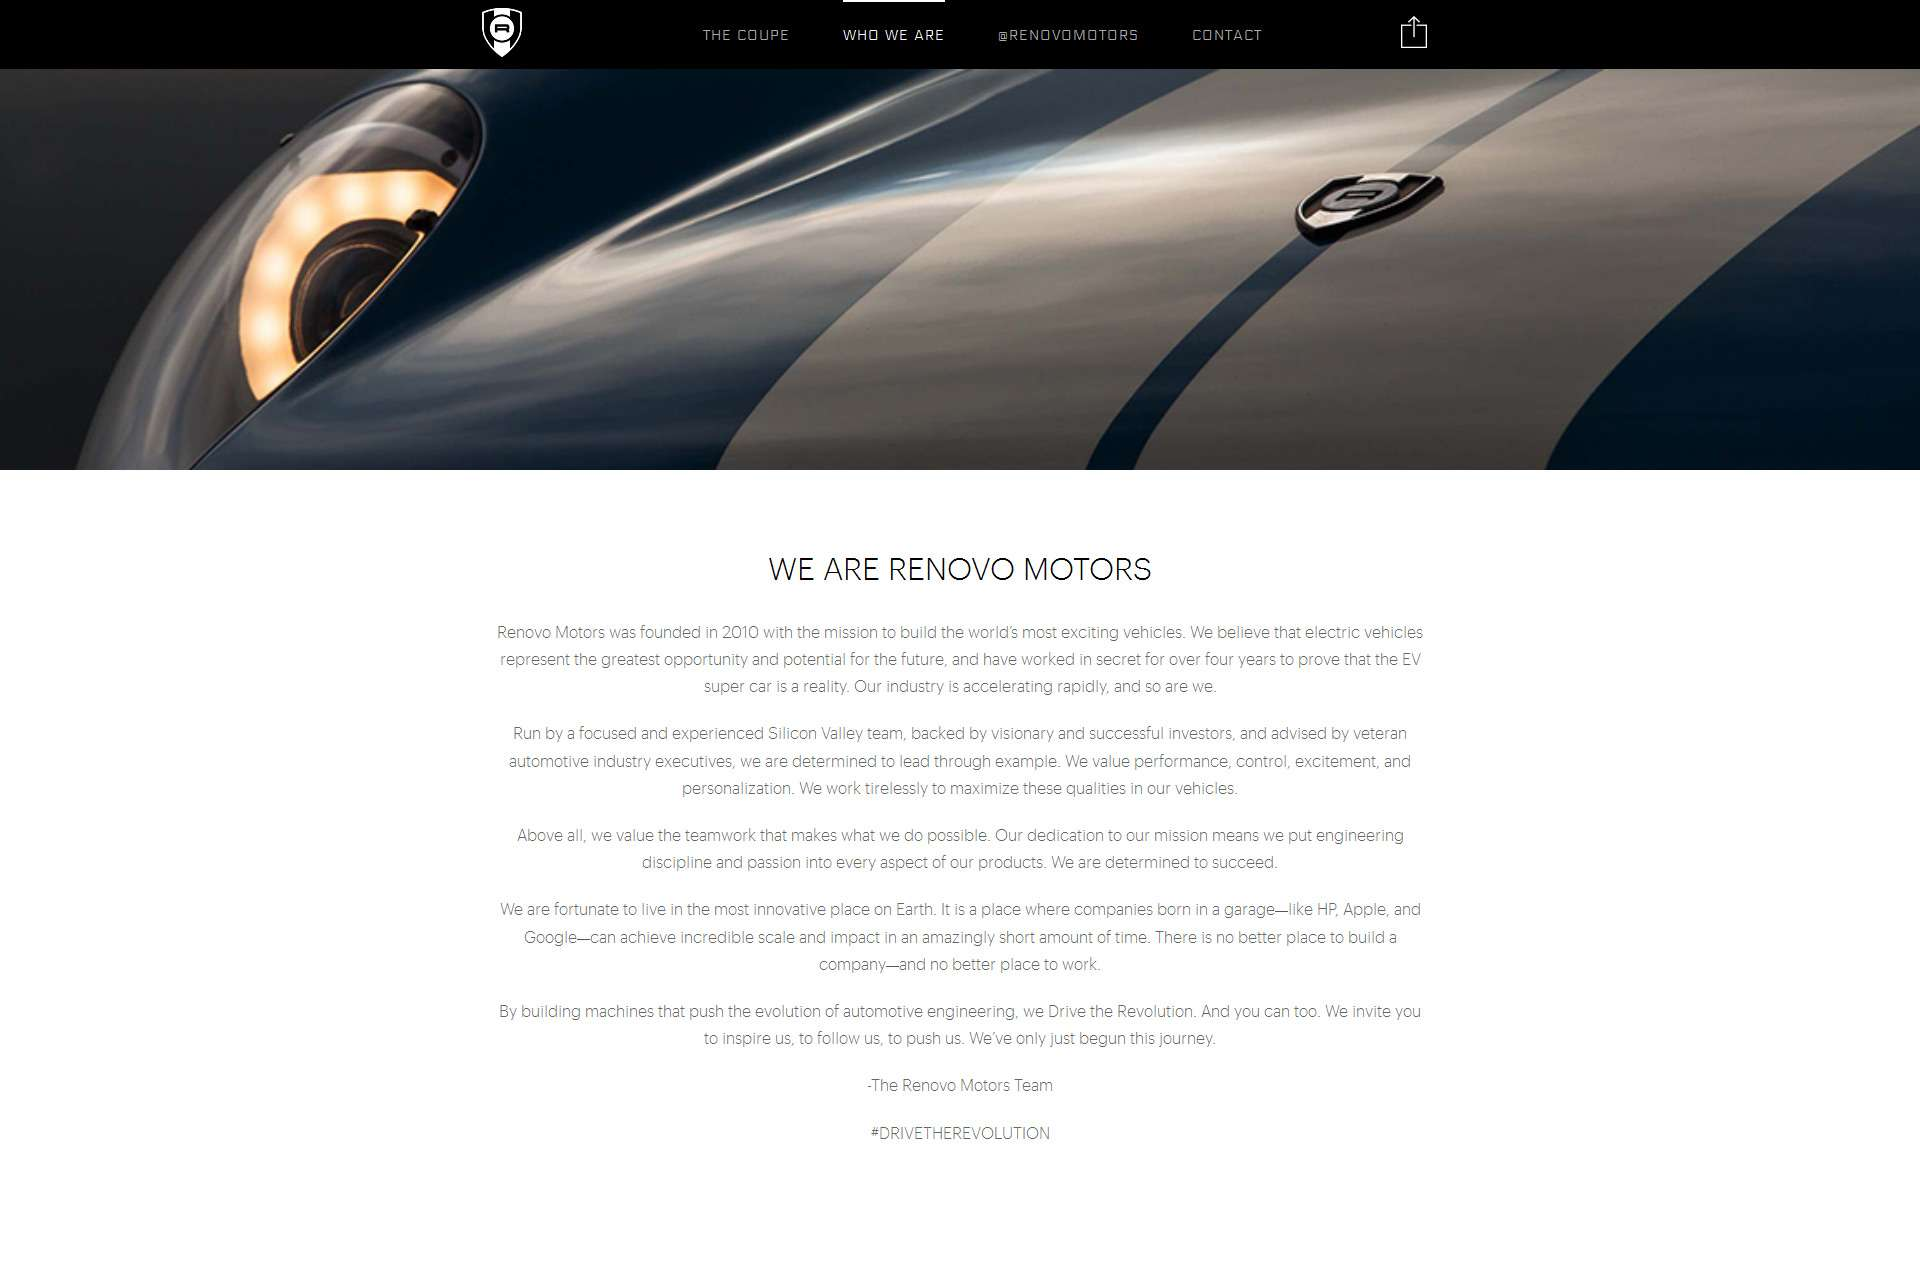 Renovo-motors-who